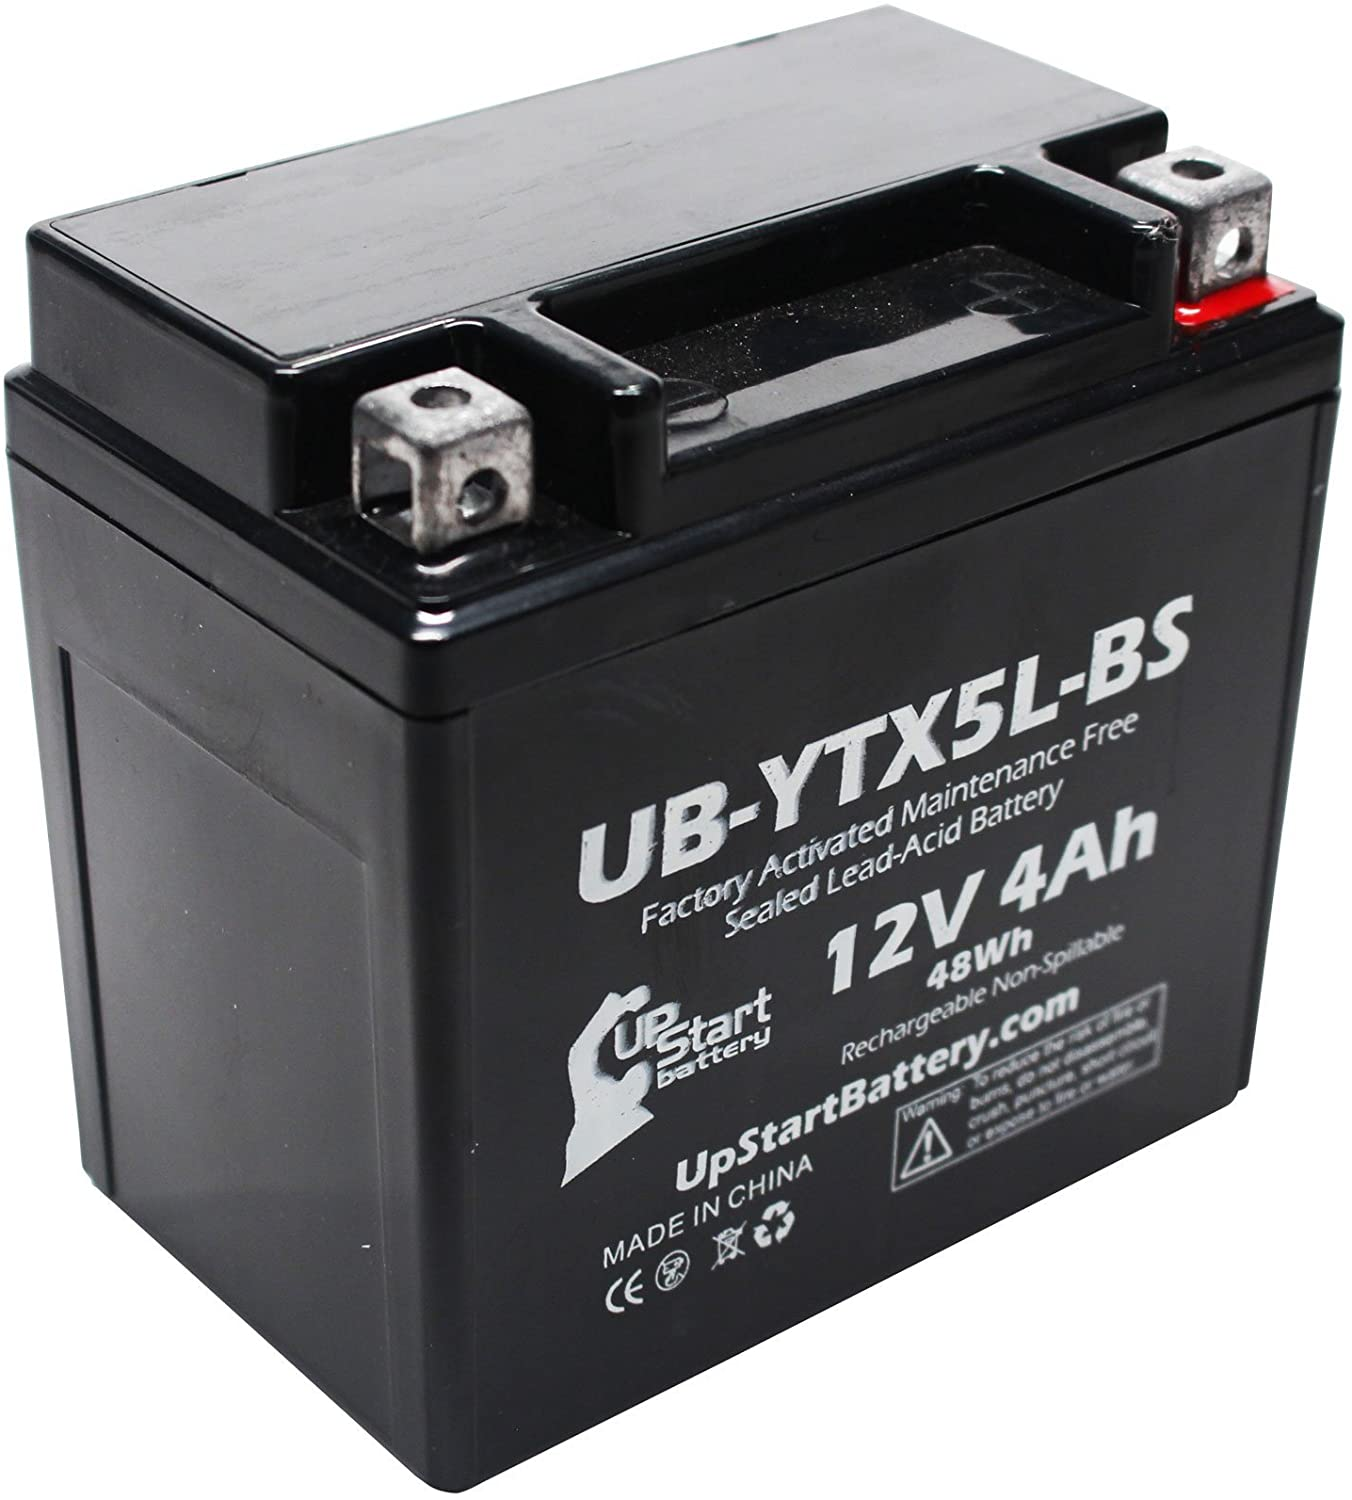 Replacement for 2009 Yamaha YW50A Zuma 50CC Factory Activated, Maintenance Free, Scooter Battery - 12V, 4Ah, UB-YTX5L-BS